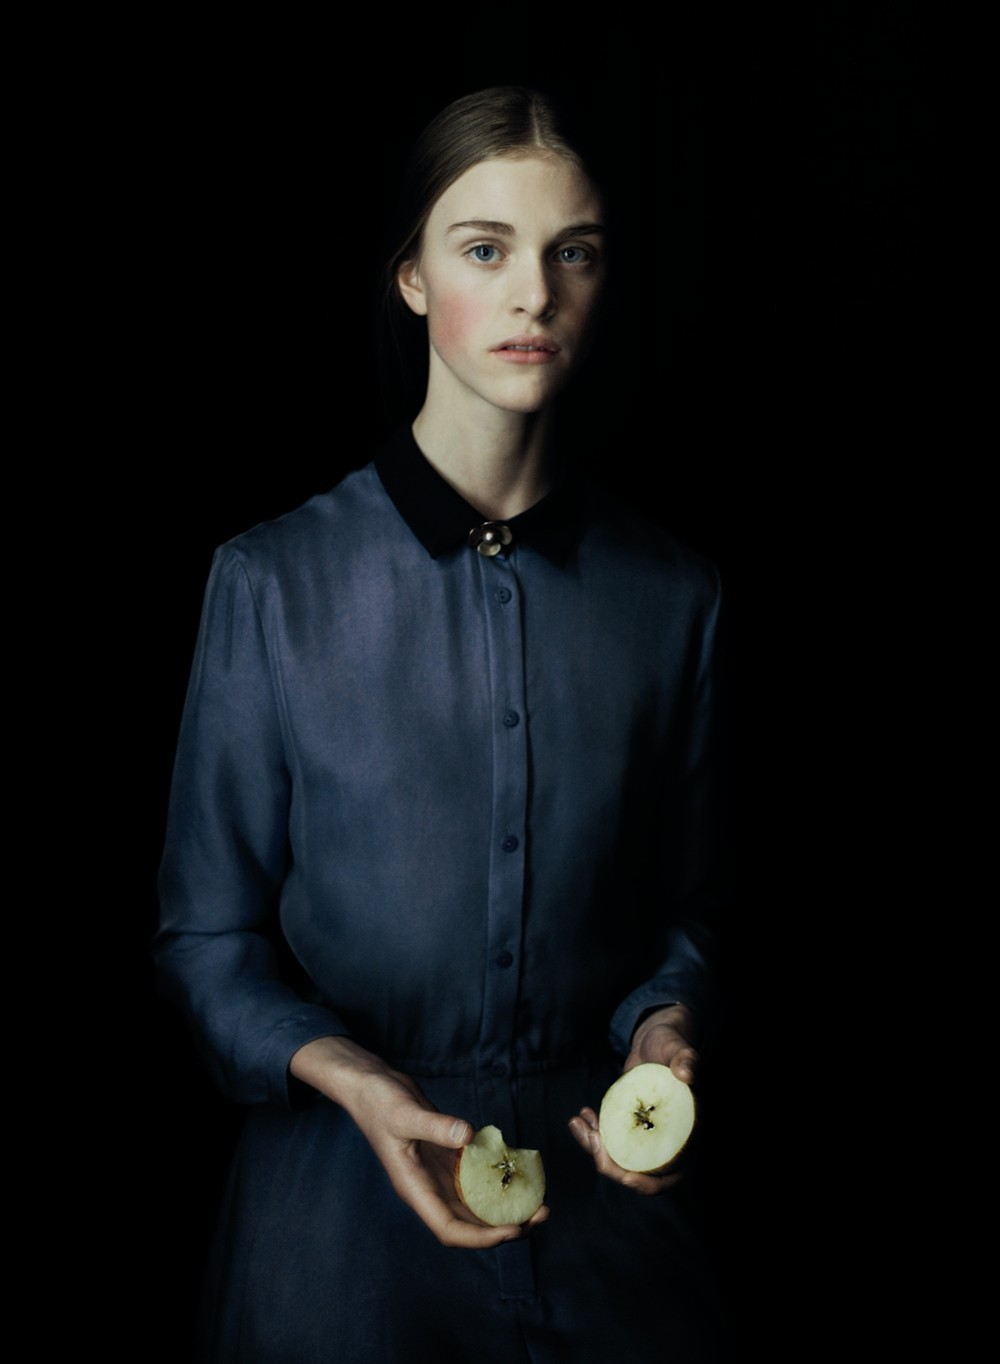 Acne Paper 2011 Girl With an Apple Photography Julia Hetta